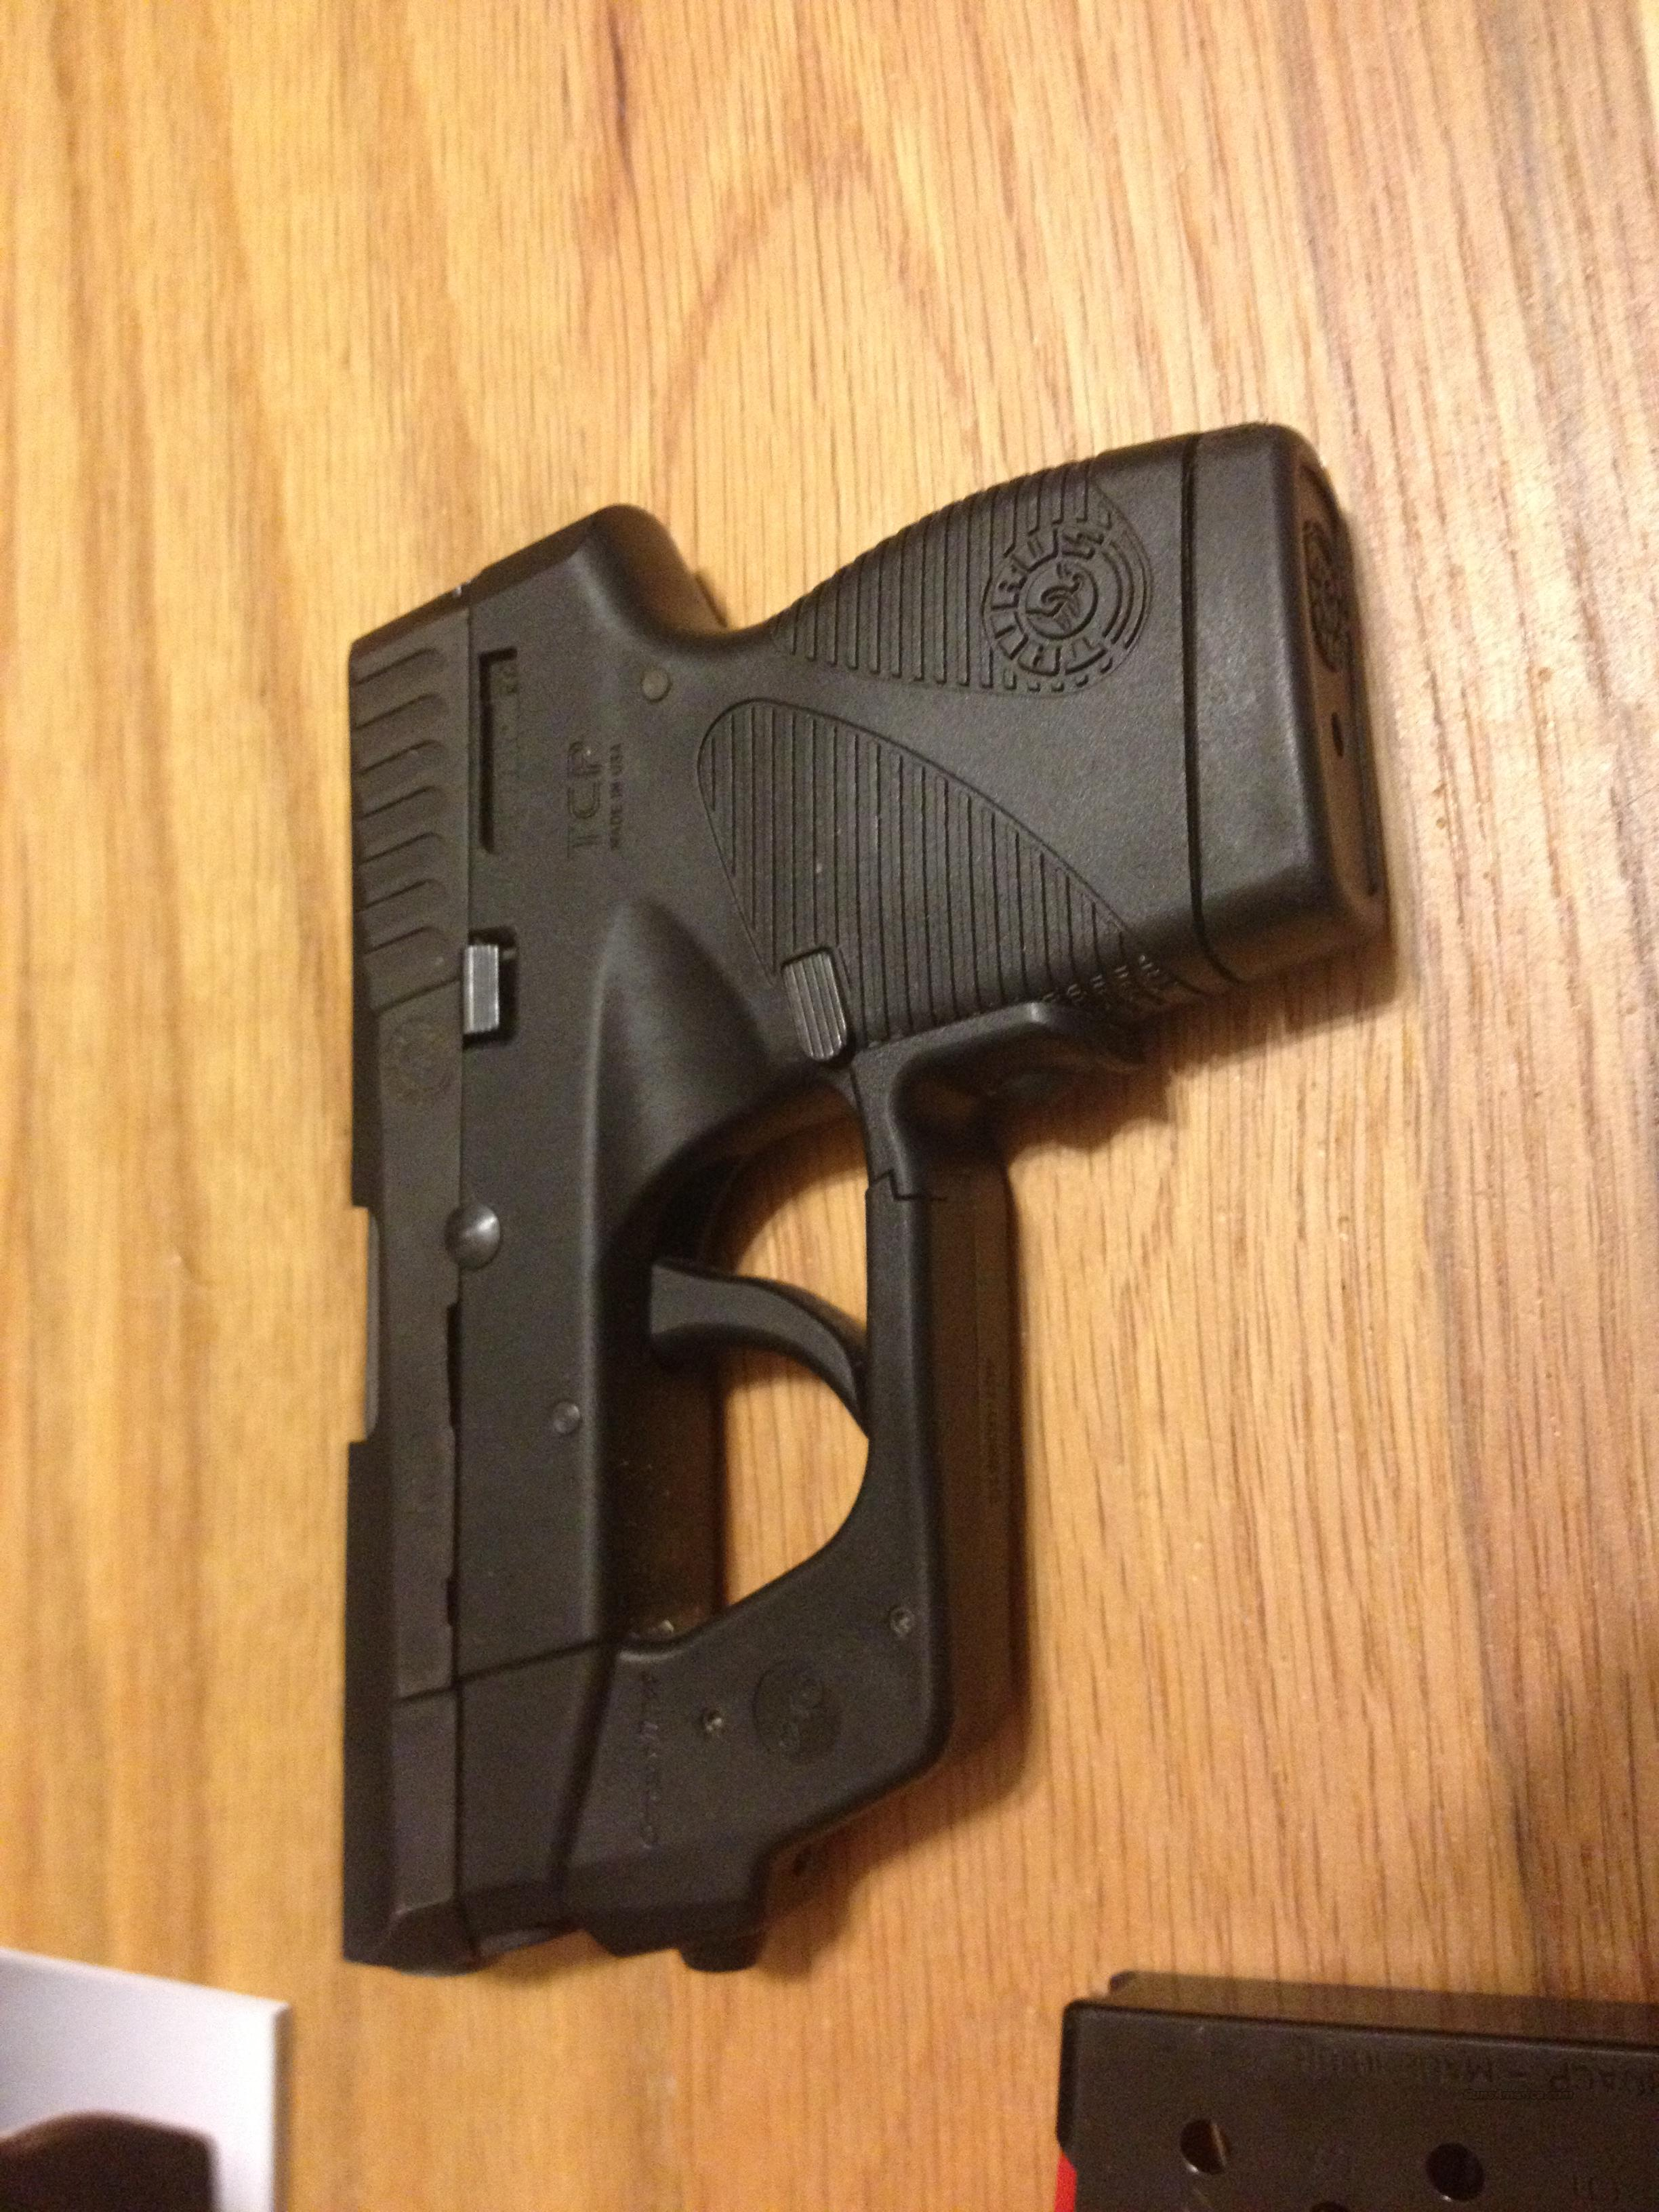 Taurus TCP PT738 in .380acp w/Crimson Trace Laser Grips installed  738 Like New in case  Guns > Pistols > Taurus Pistols/Revolvers > Pistols > Polymer Frame